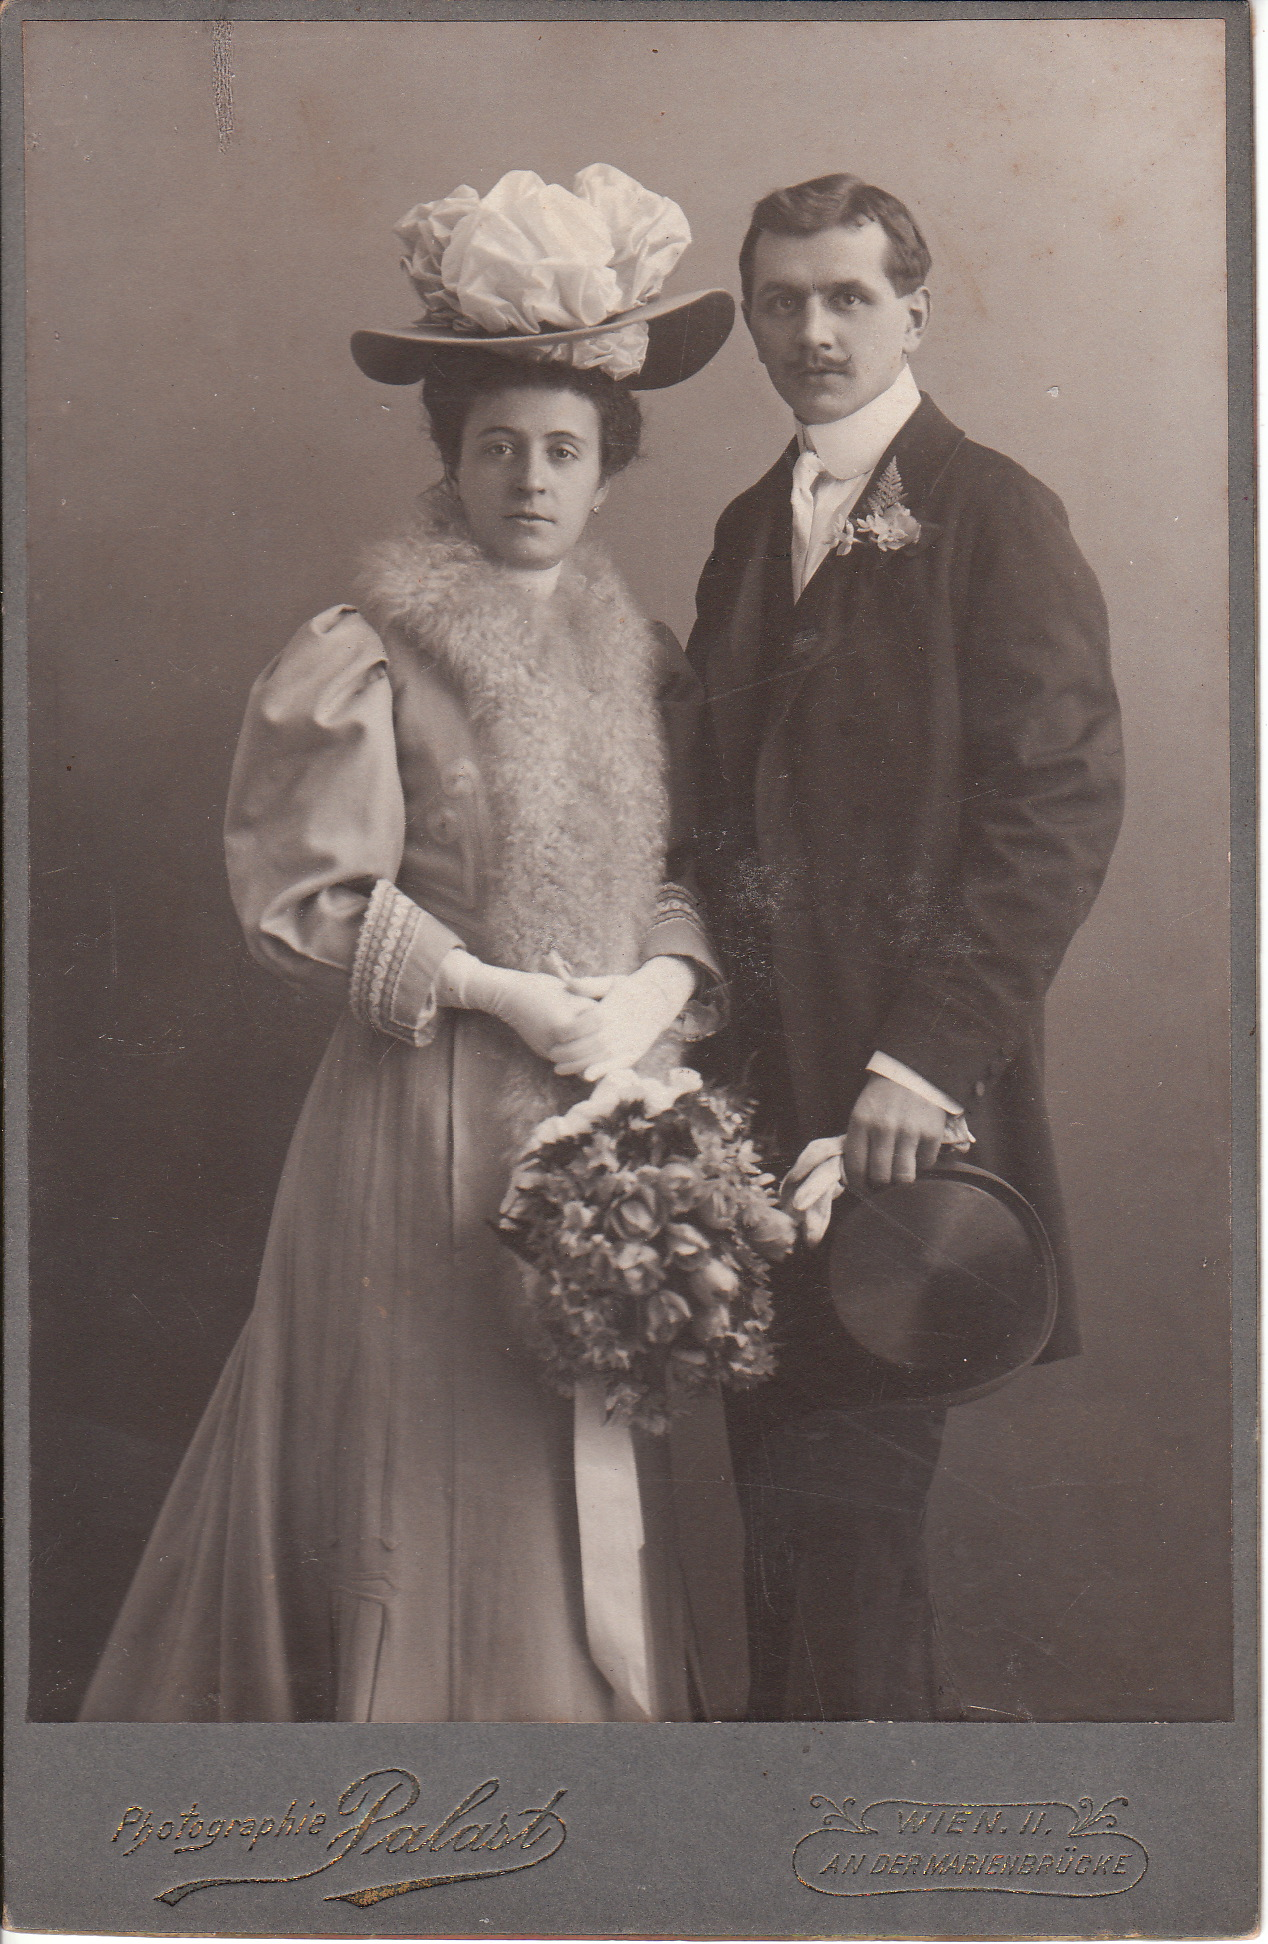 Dating cabinet card photography